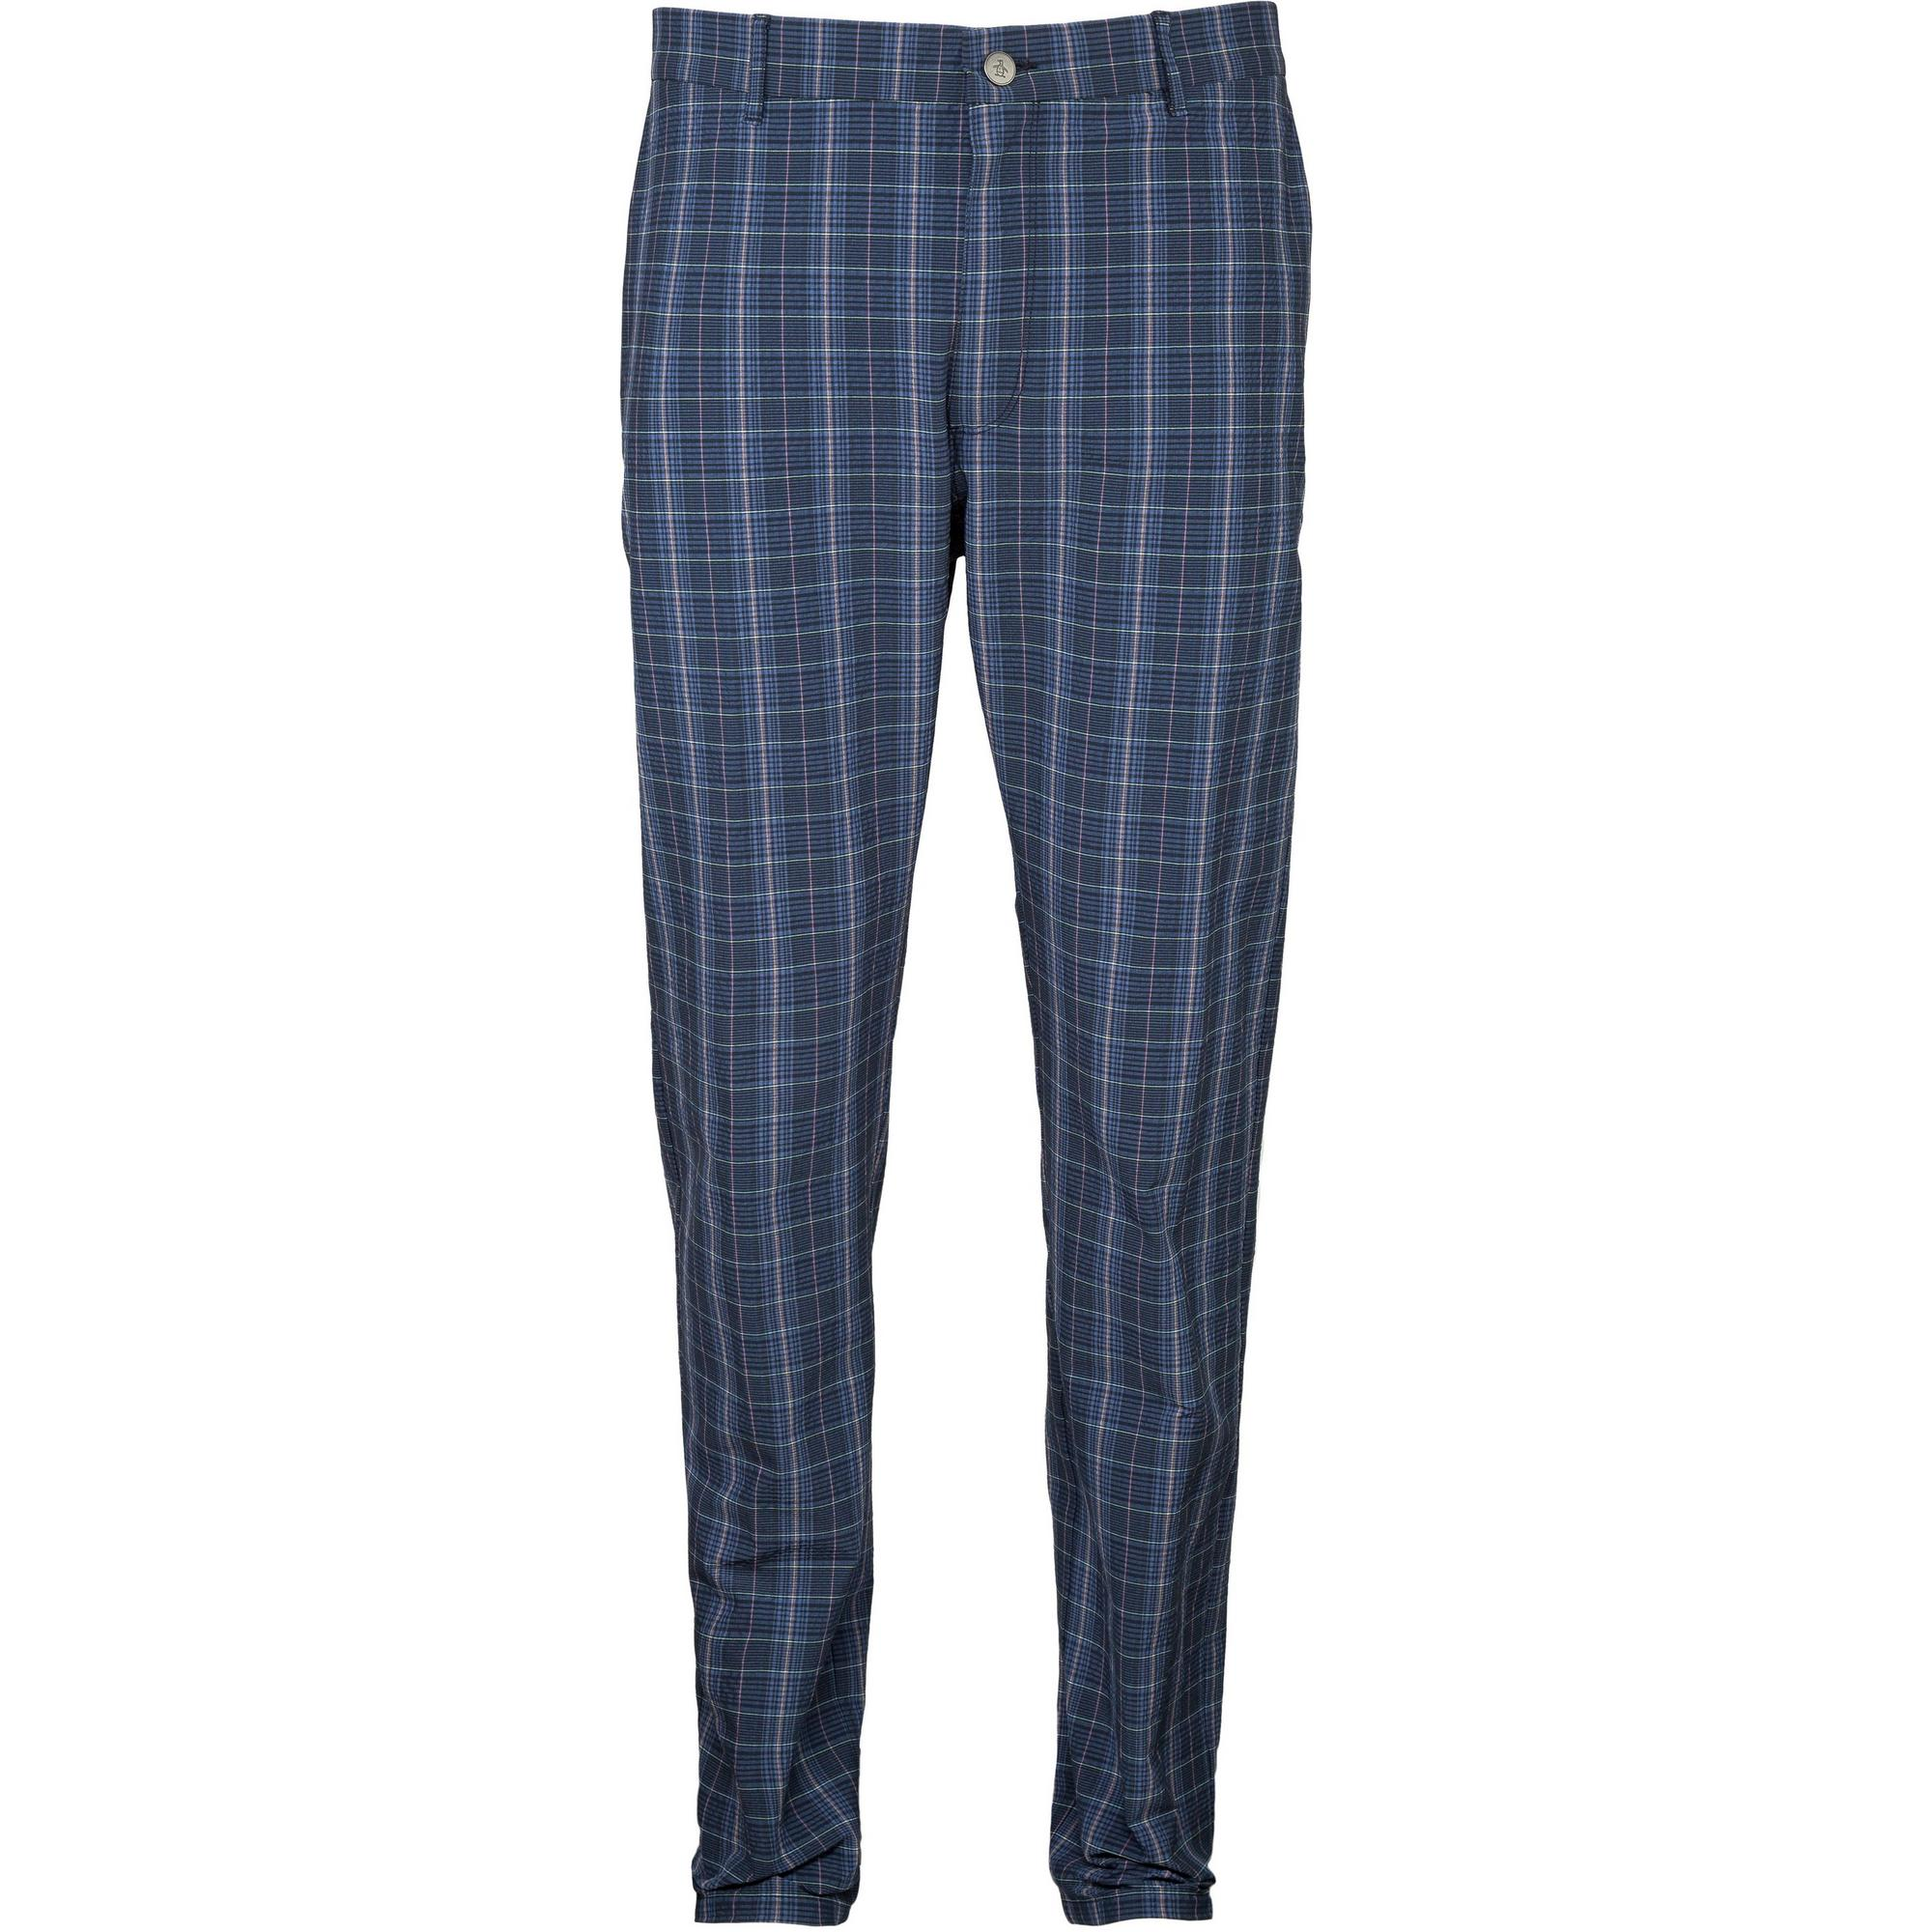 Men's Plaid Party Pant